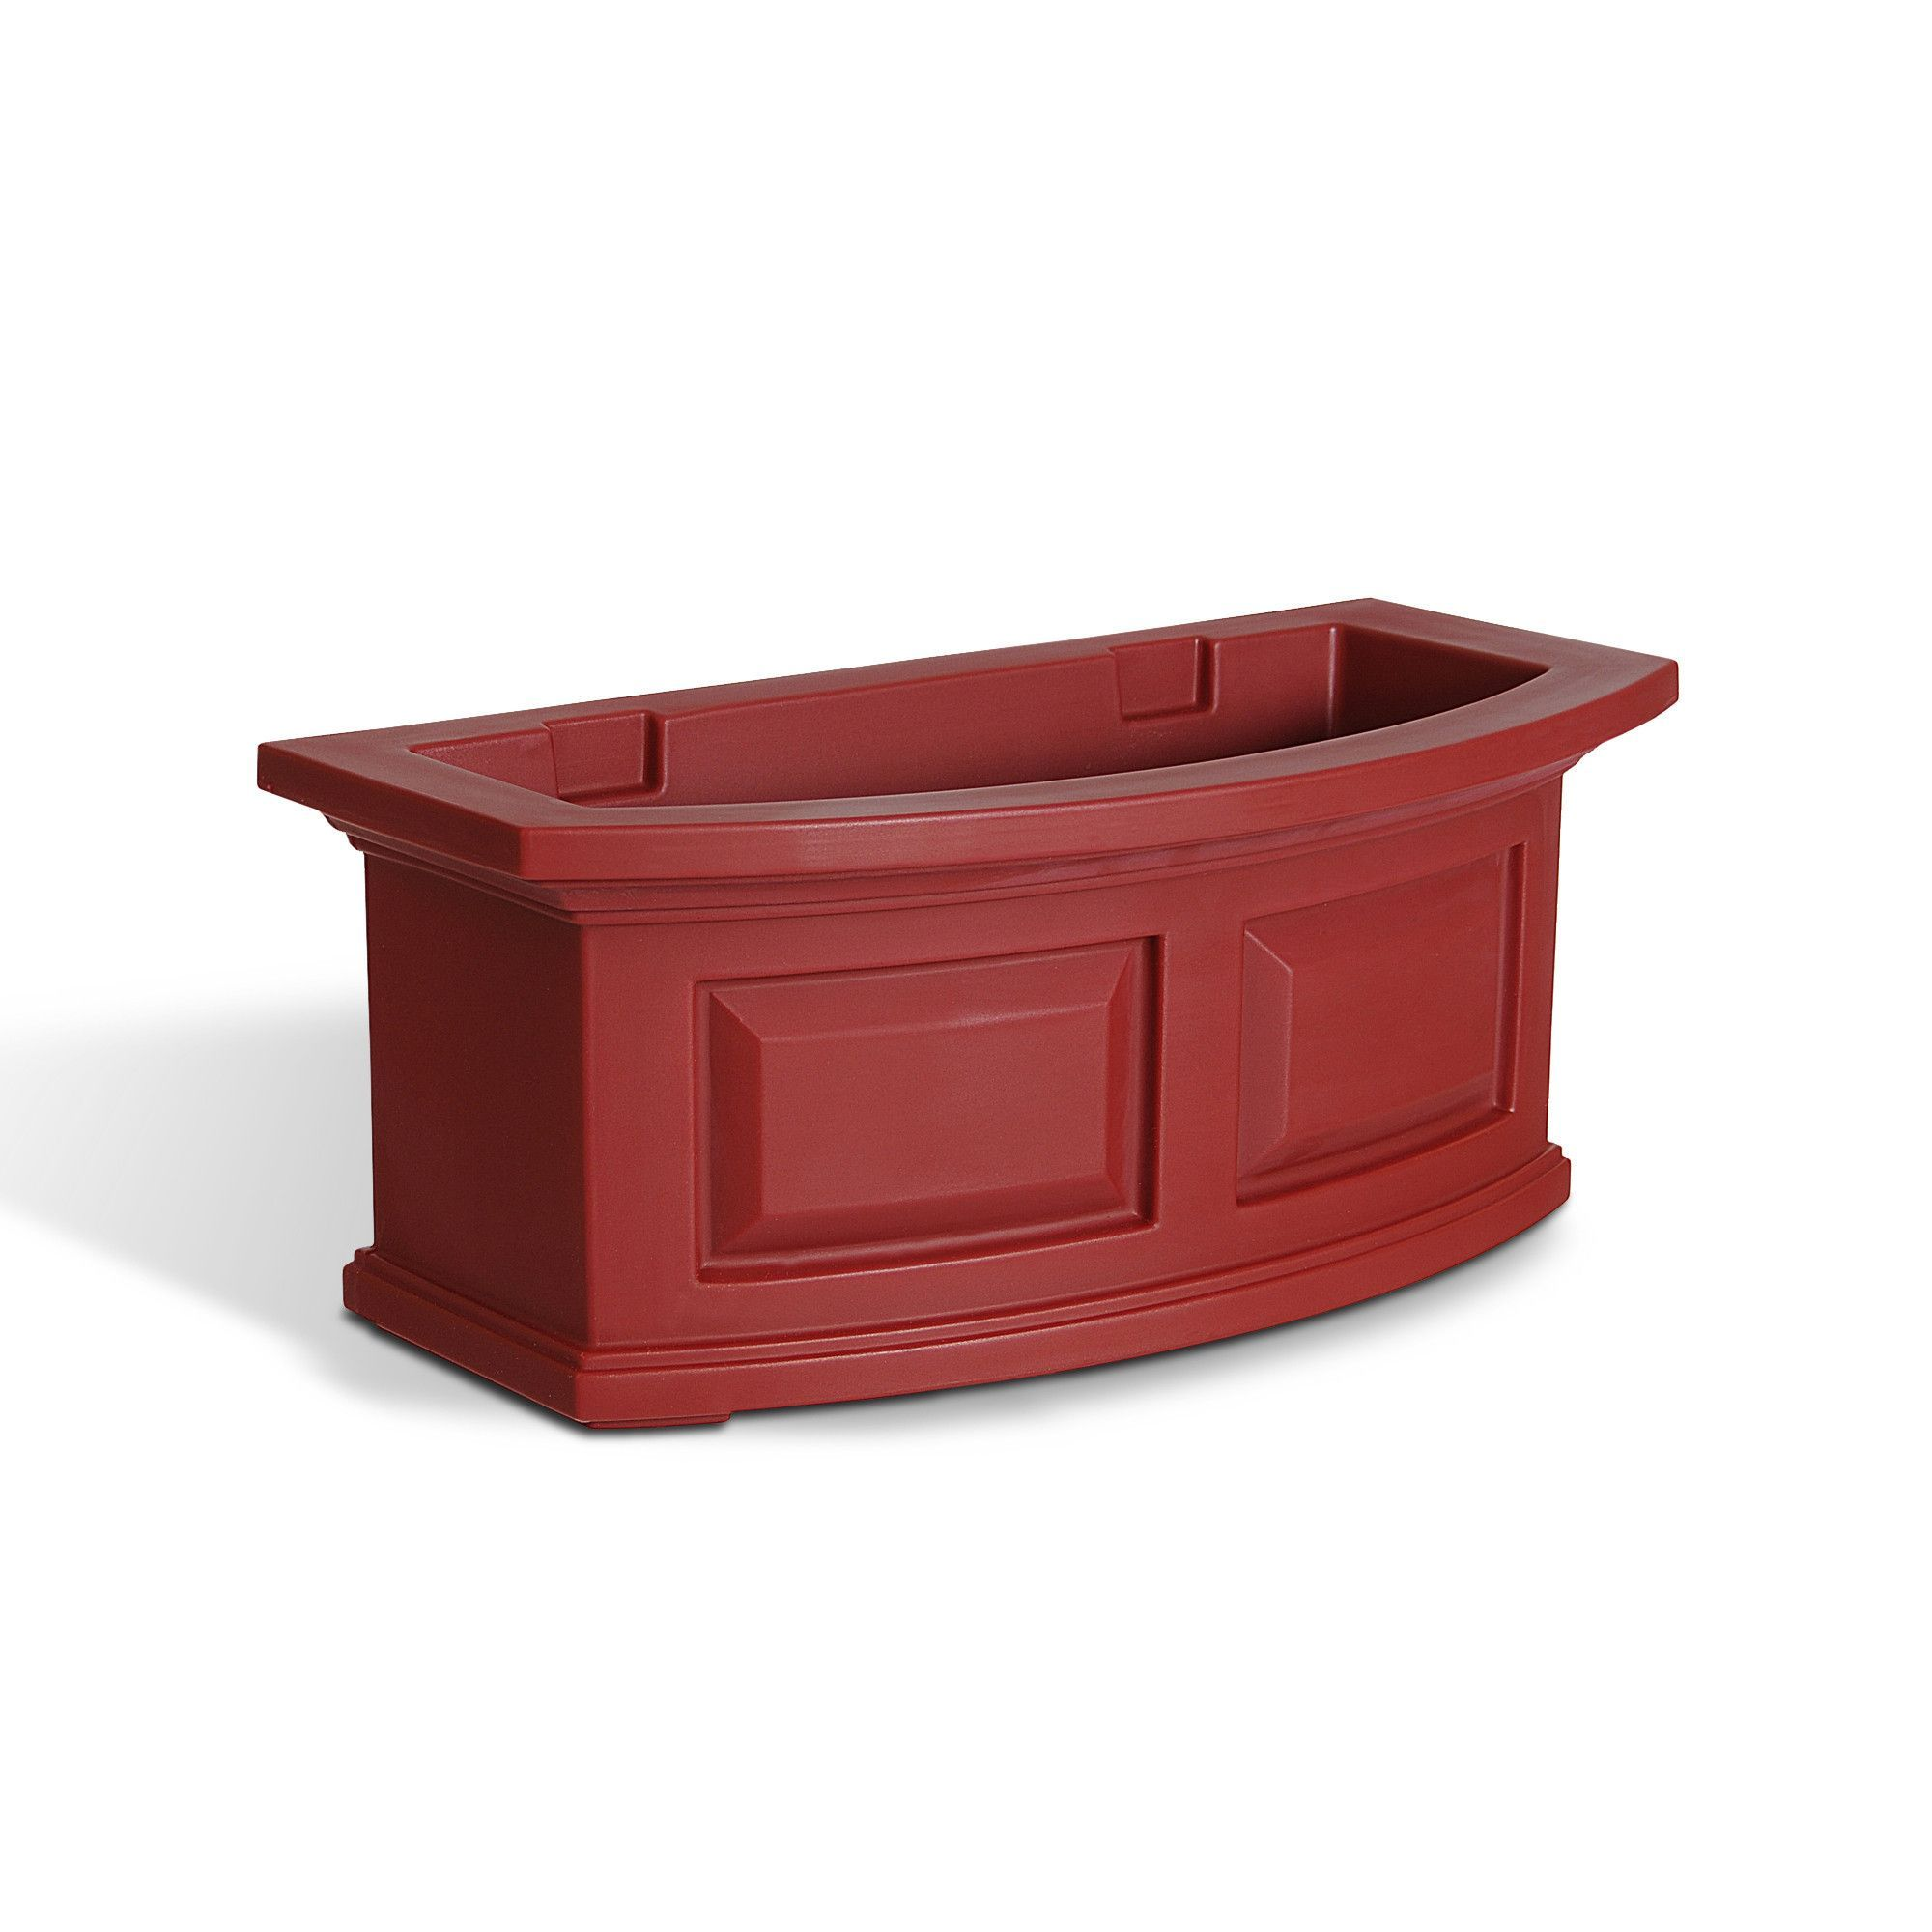 canada lowes plastic planter demandit square uk liners org wholesale